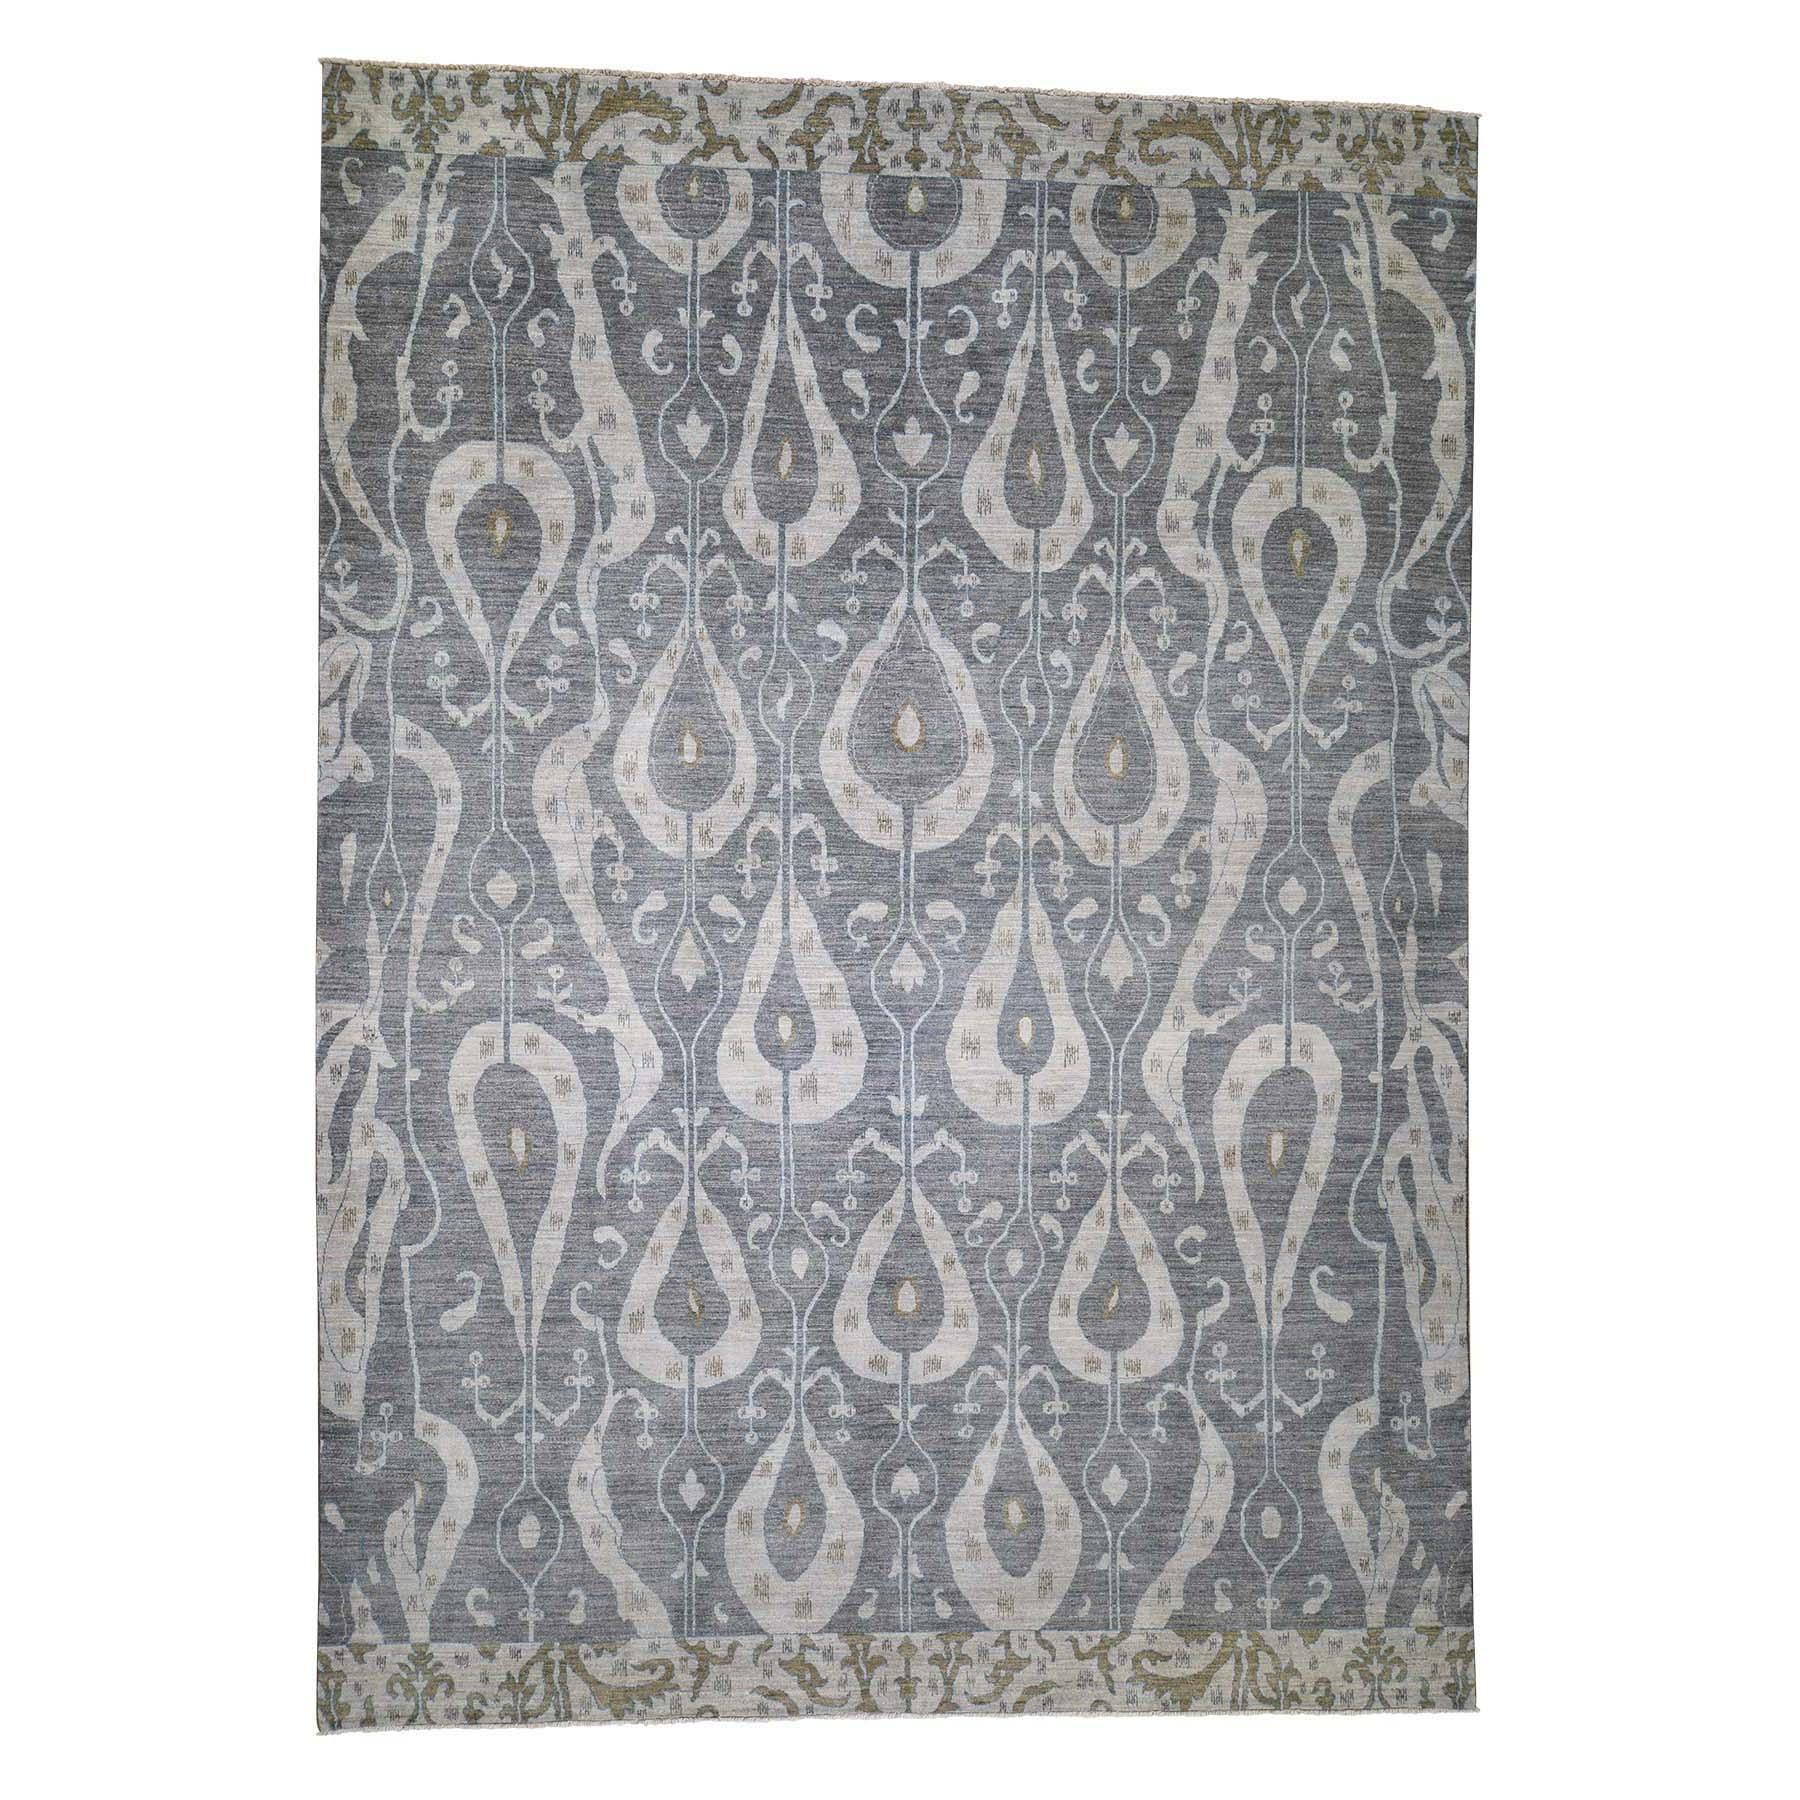 10'x14' Ikat Uzbek Design Pure Wool Hand Knotted Oriental Rug